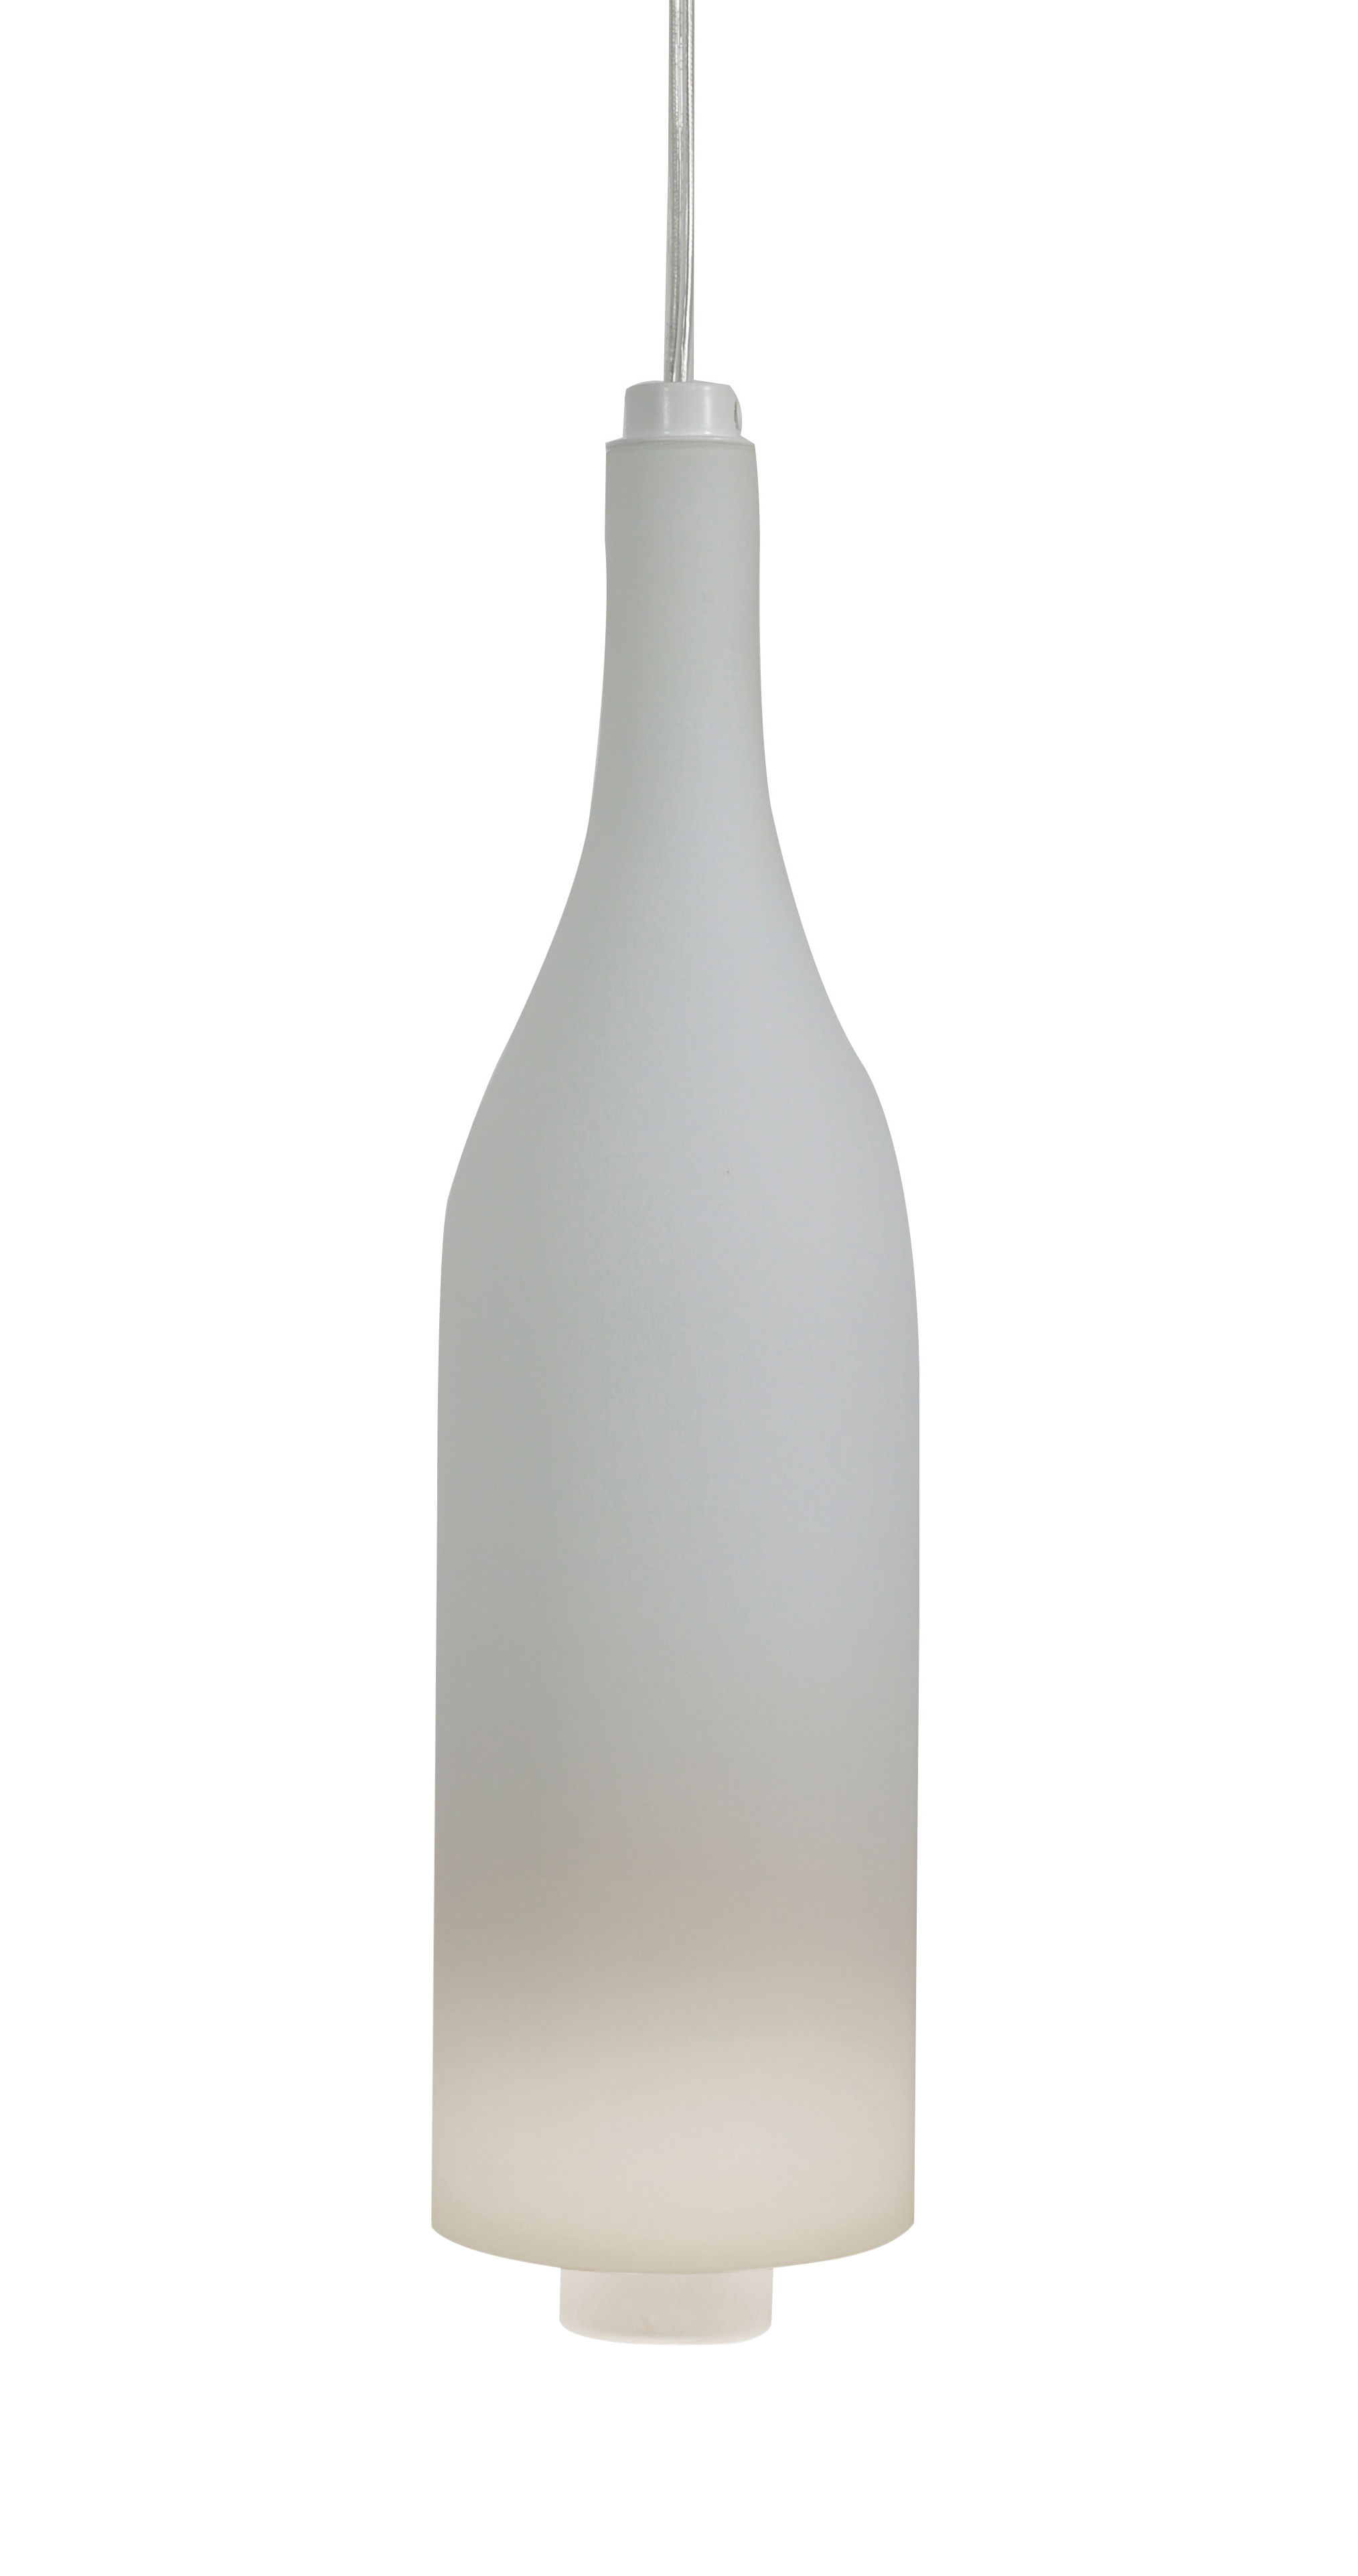 Lighting - Pendant Lighting - Bacco Pendant - Frosted glass - H 34 x Ø 9 cm by Karman - White - Frosted glass